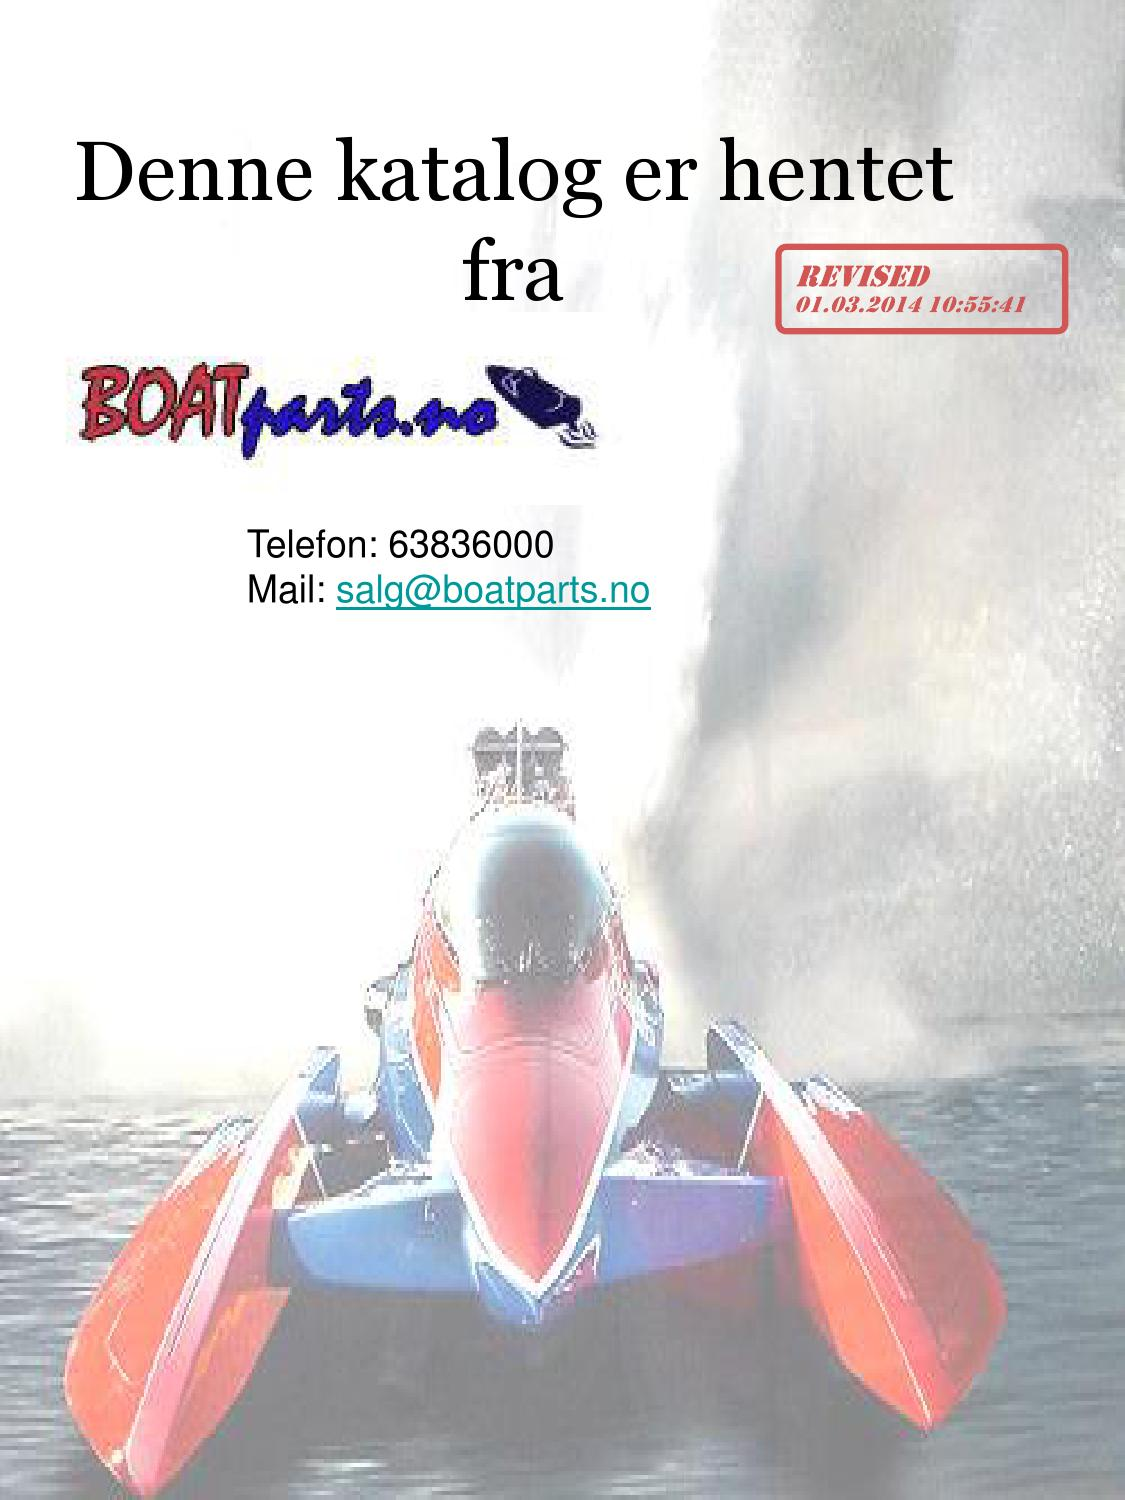 Inboard delekatalog alle merker by Boatparts.no AS - issuu on